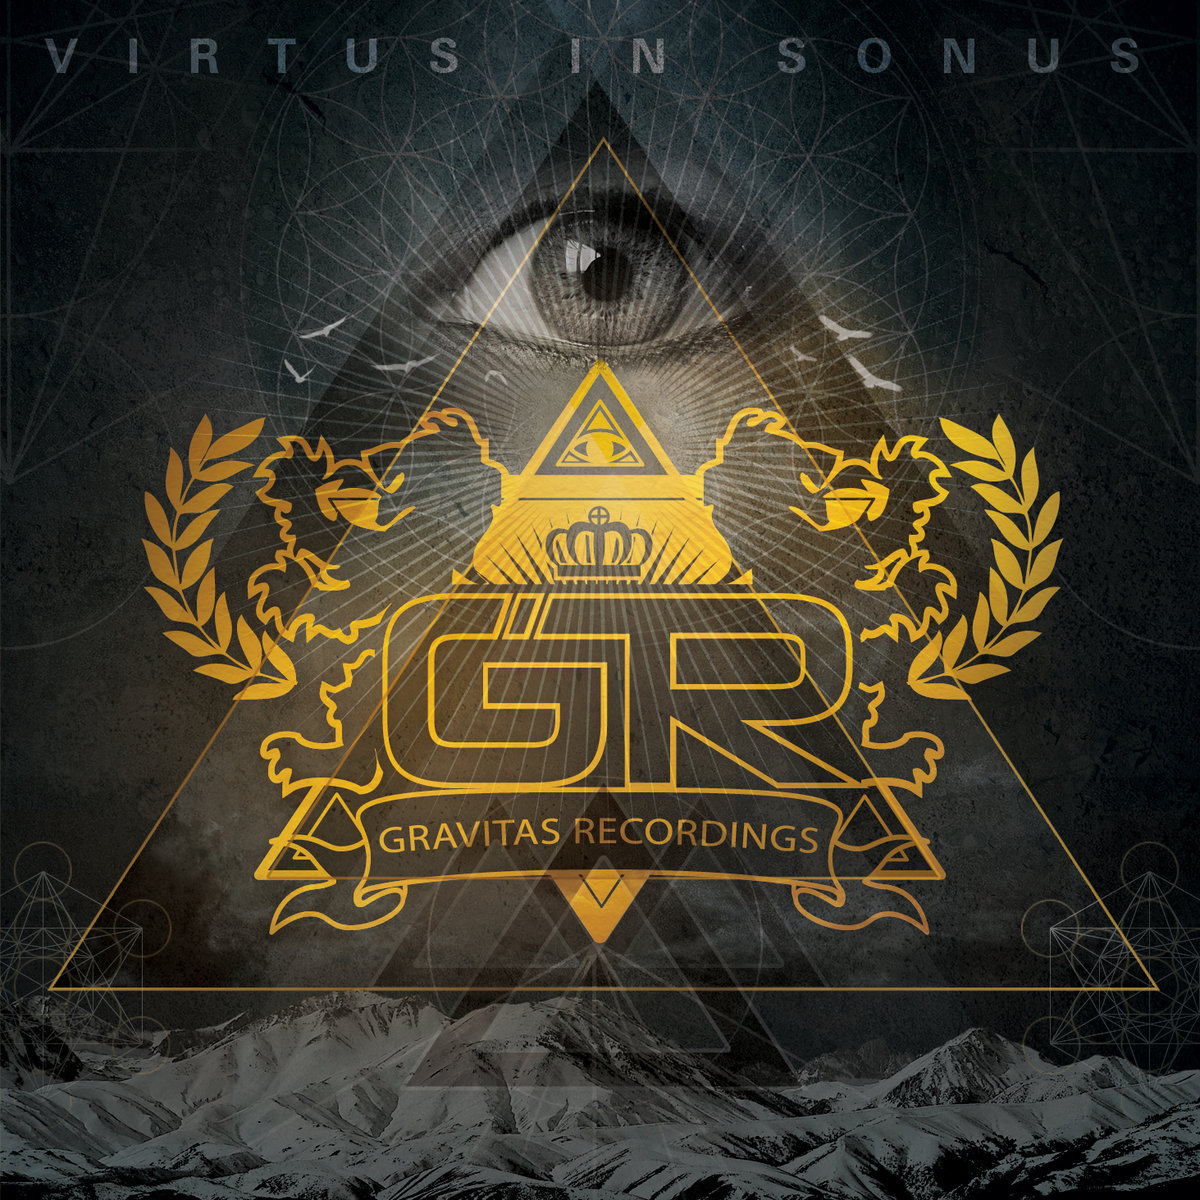 Metranohm - Revolution @ 'Virtus In Sonus' album (blunt instrument, boombaptist)